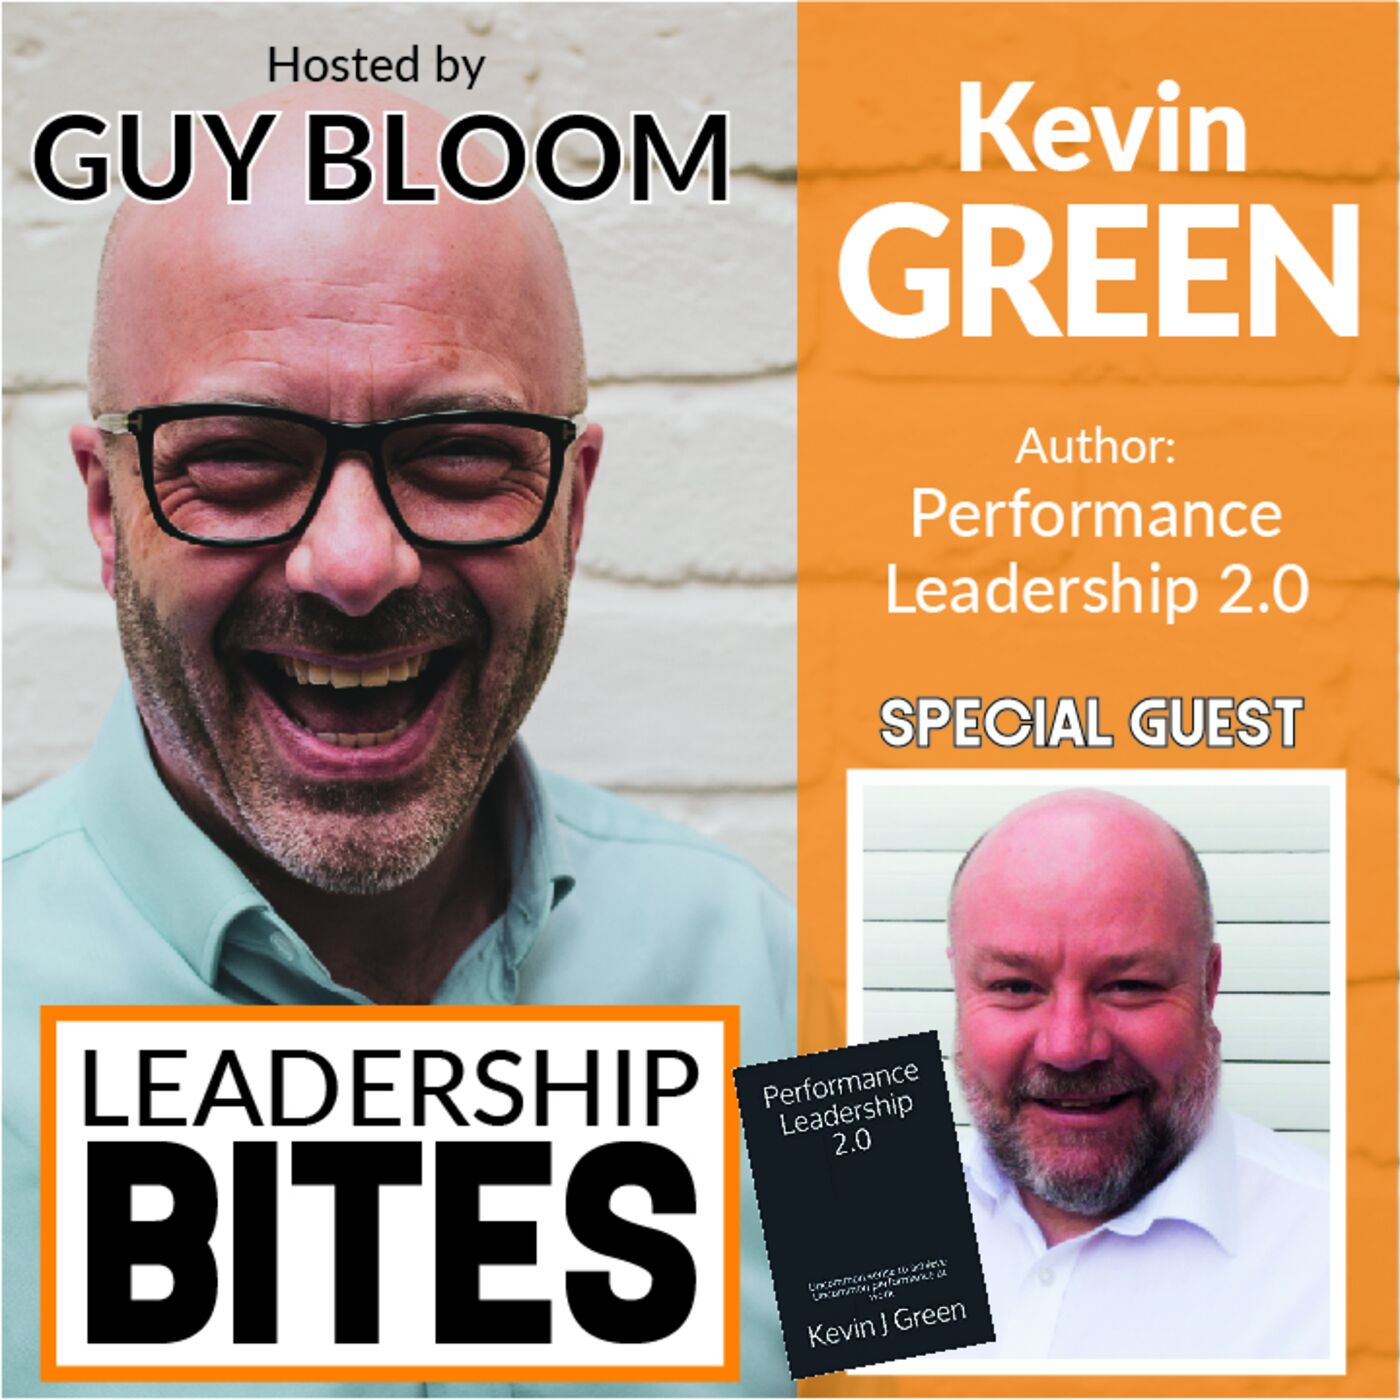 Kevin Green, Performance Leadership 2.0